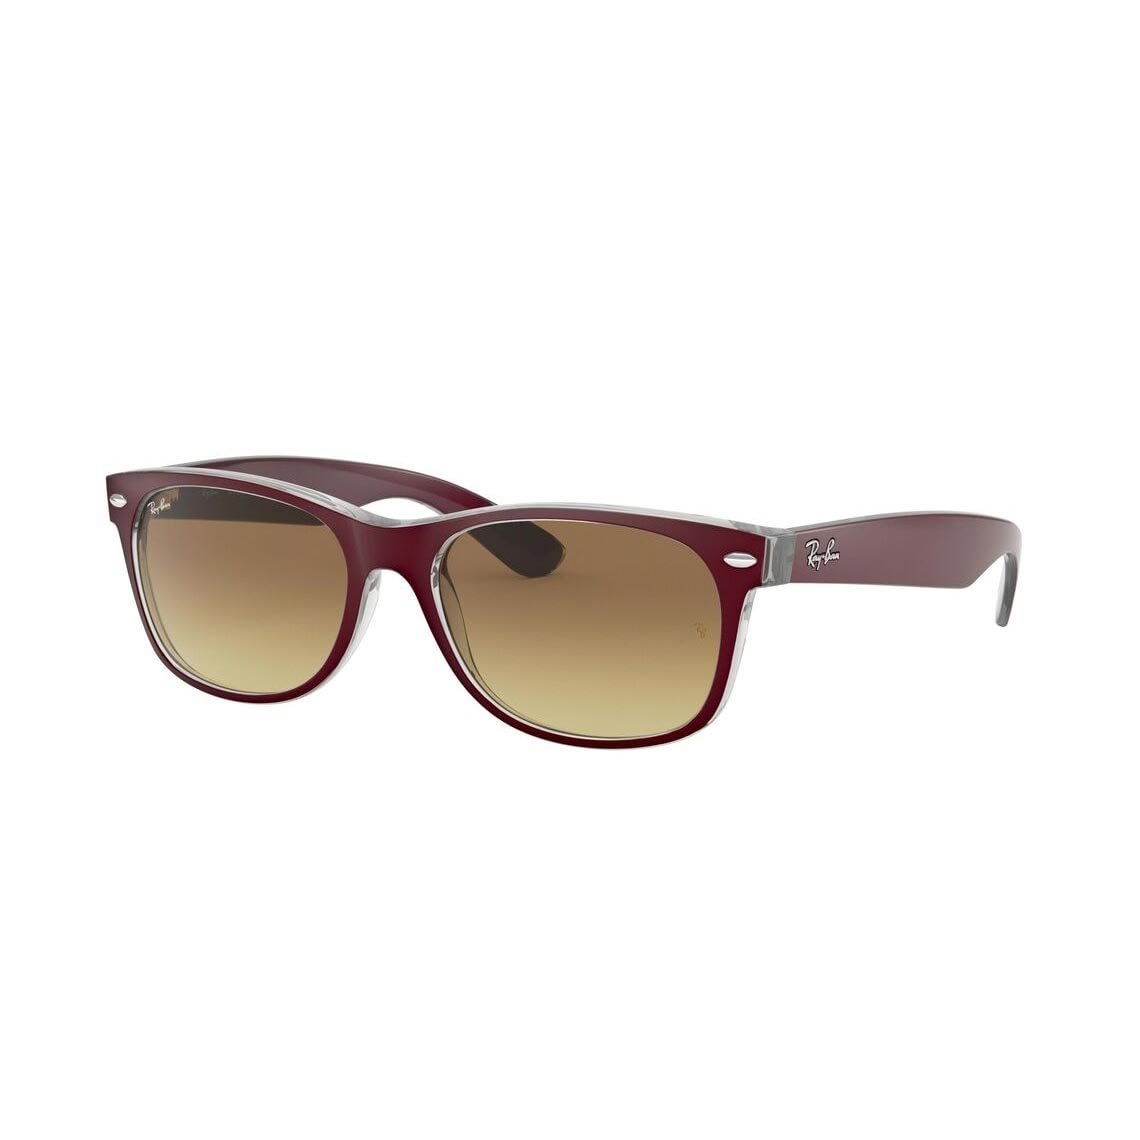 Ray-Ban New Wayfarer RB2132 605485 52